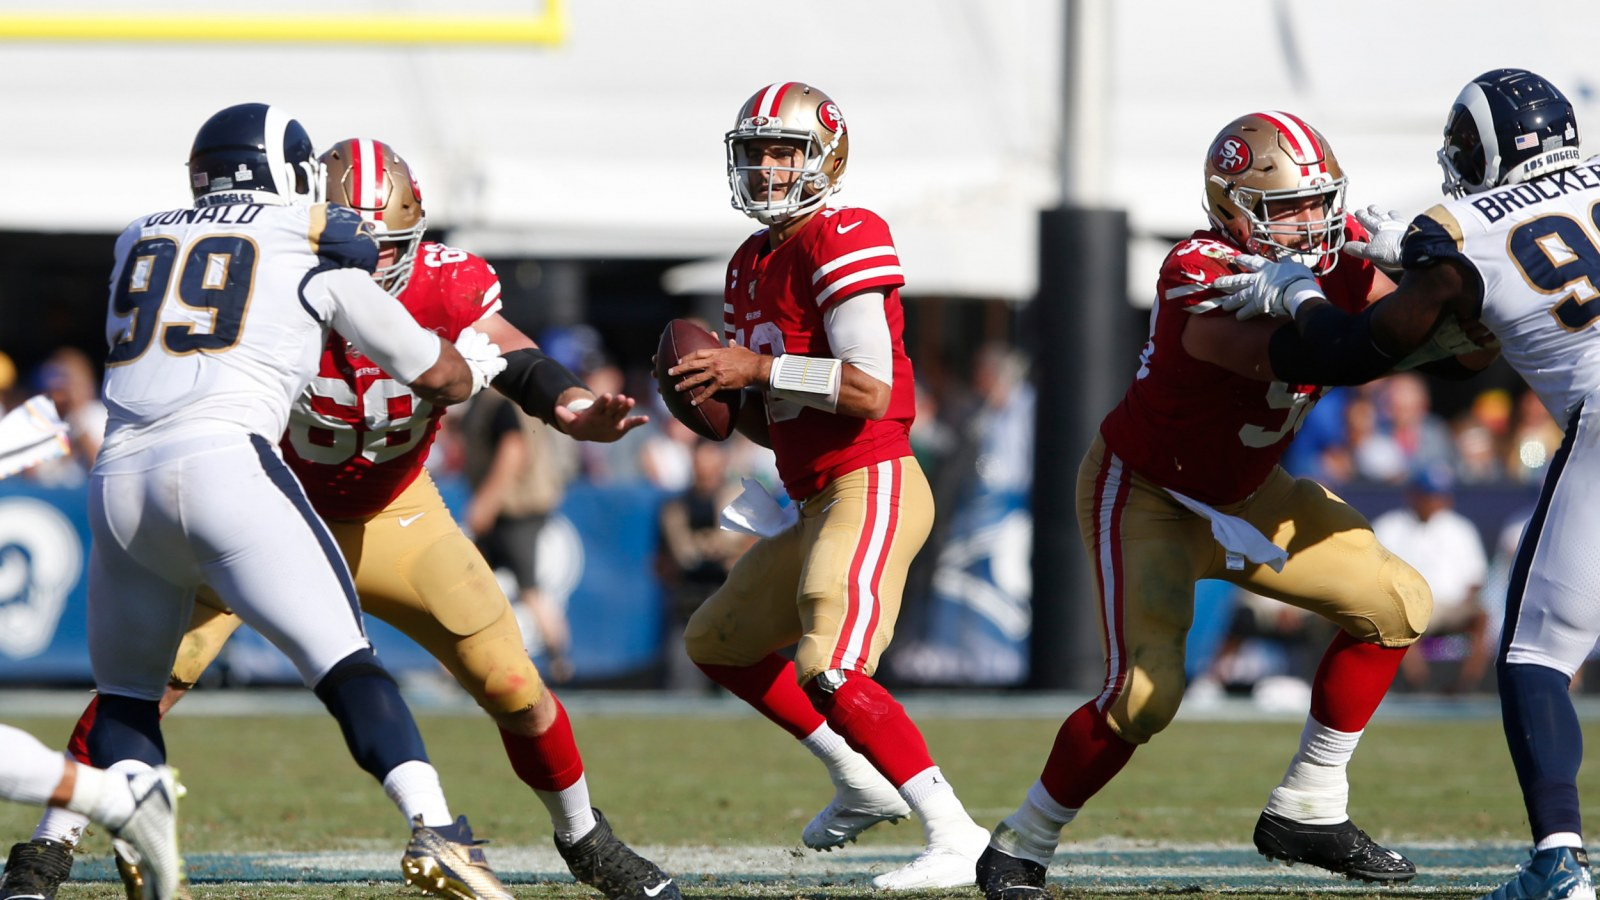 49ers rams game live stream free